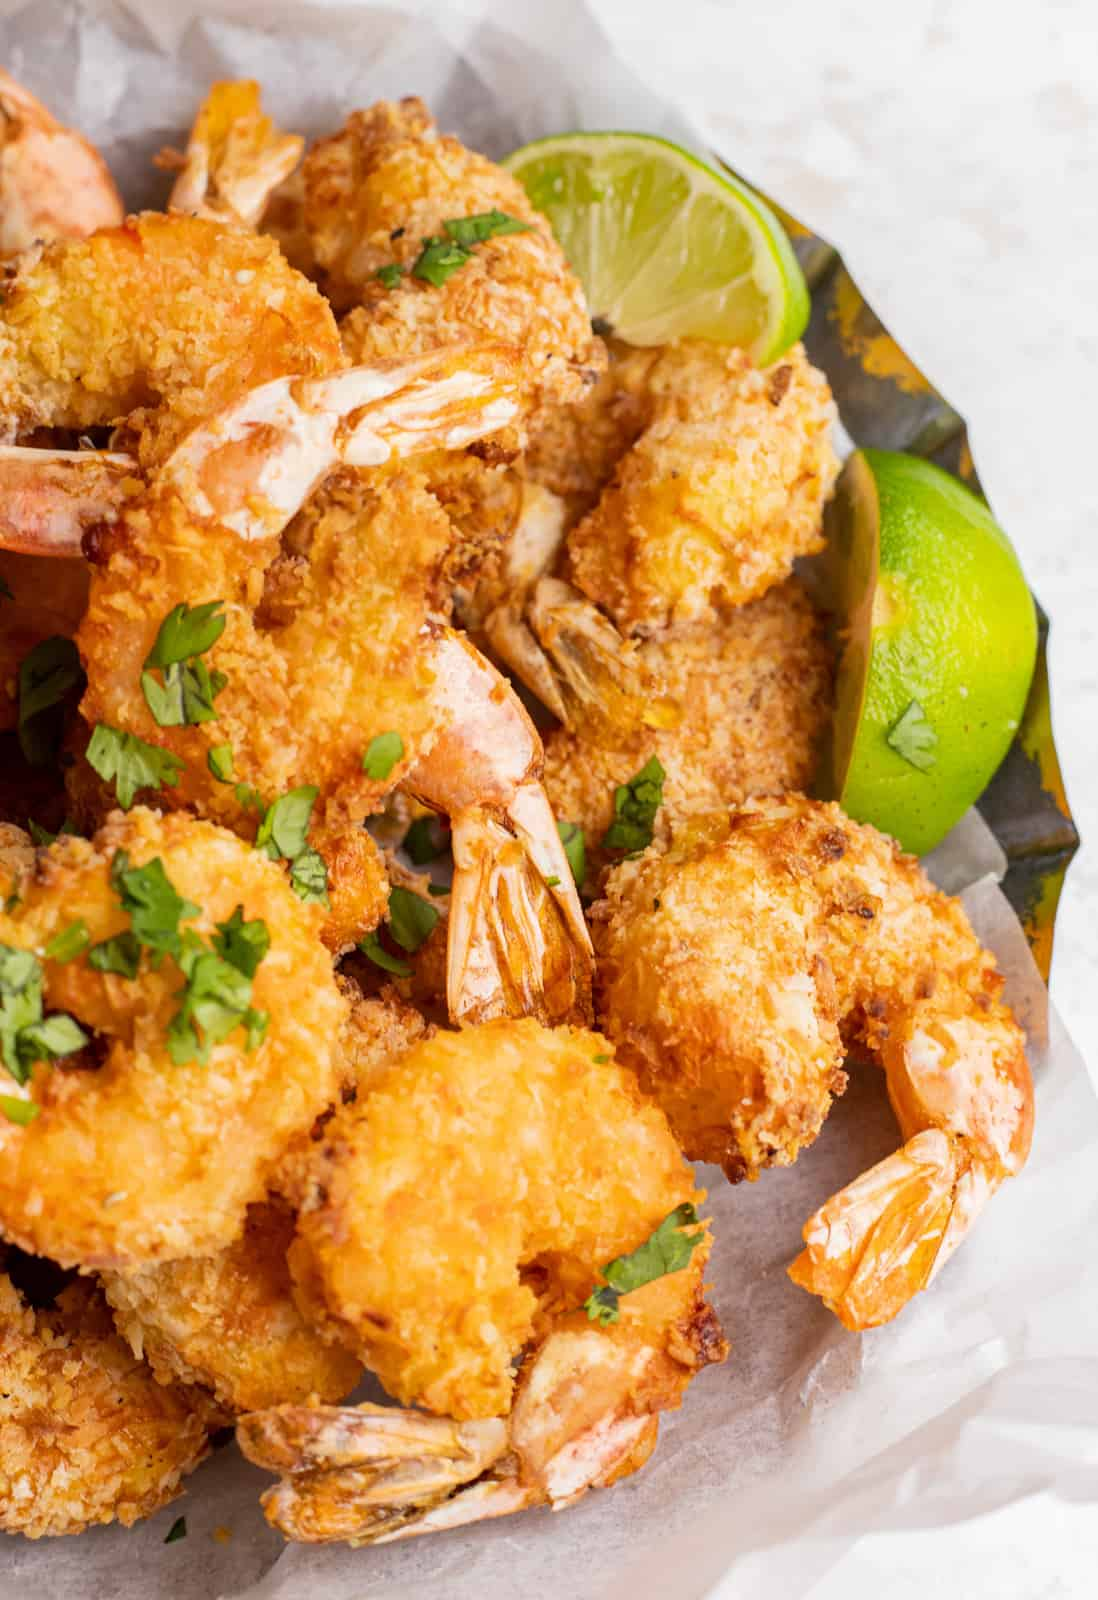 Overhead of Coconut Shrimp in basket with limes